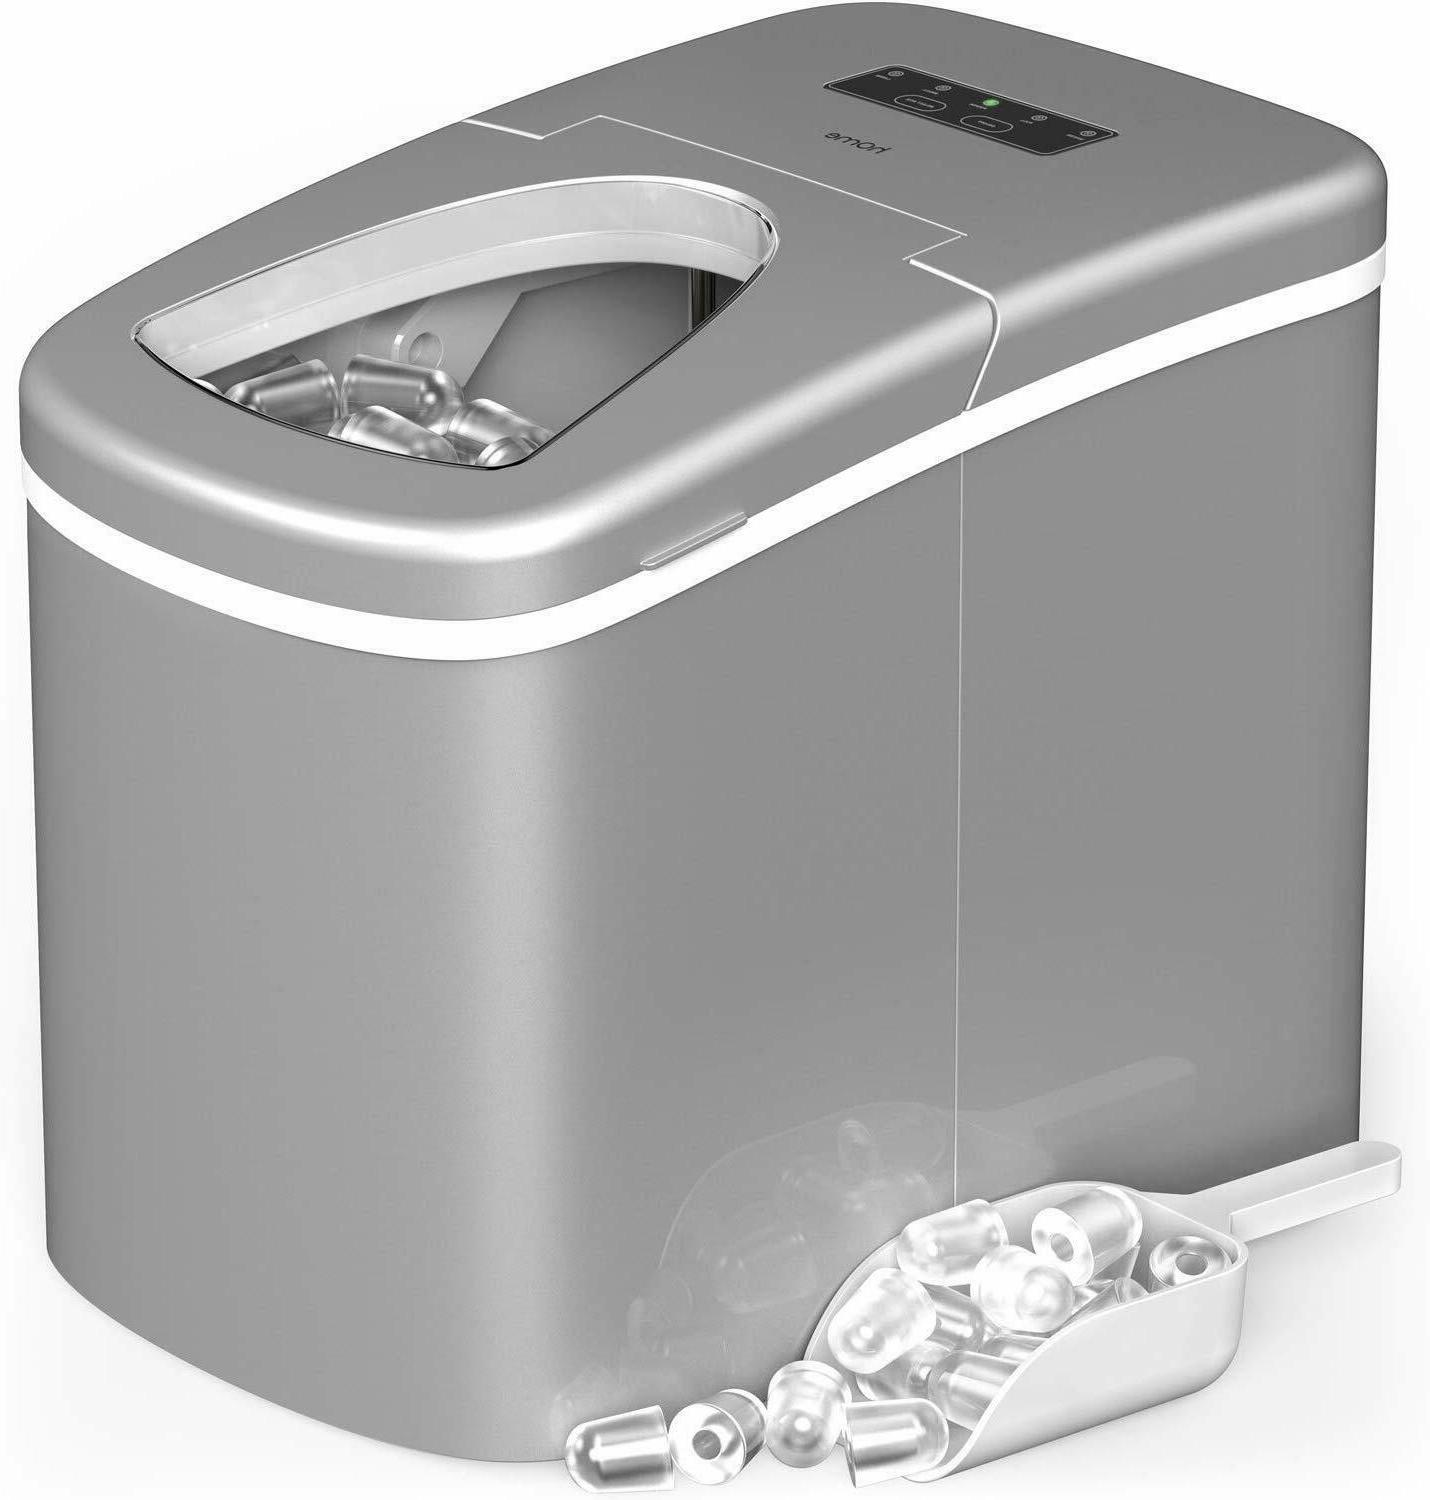 hOmeLabs Portable Ice Maker Machine for Countertop, Ice Cube